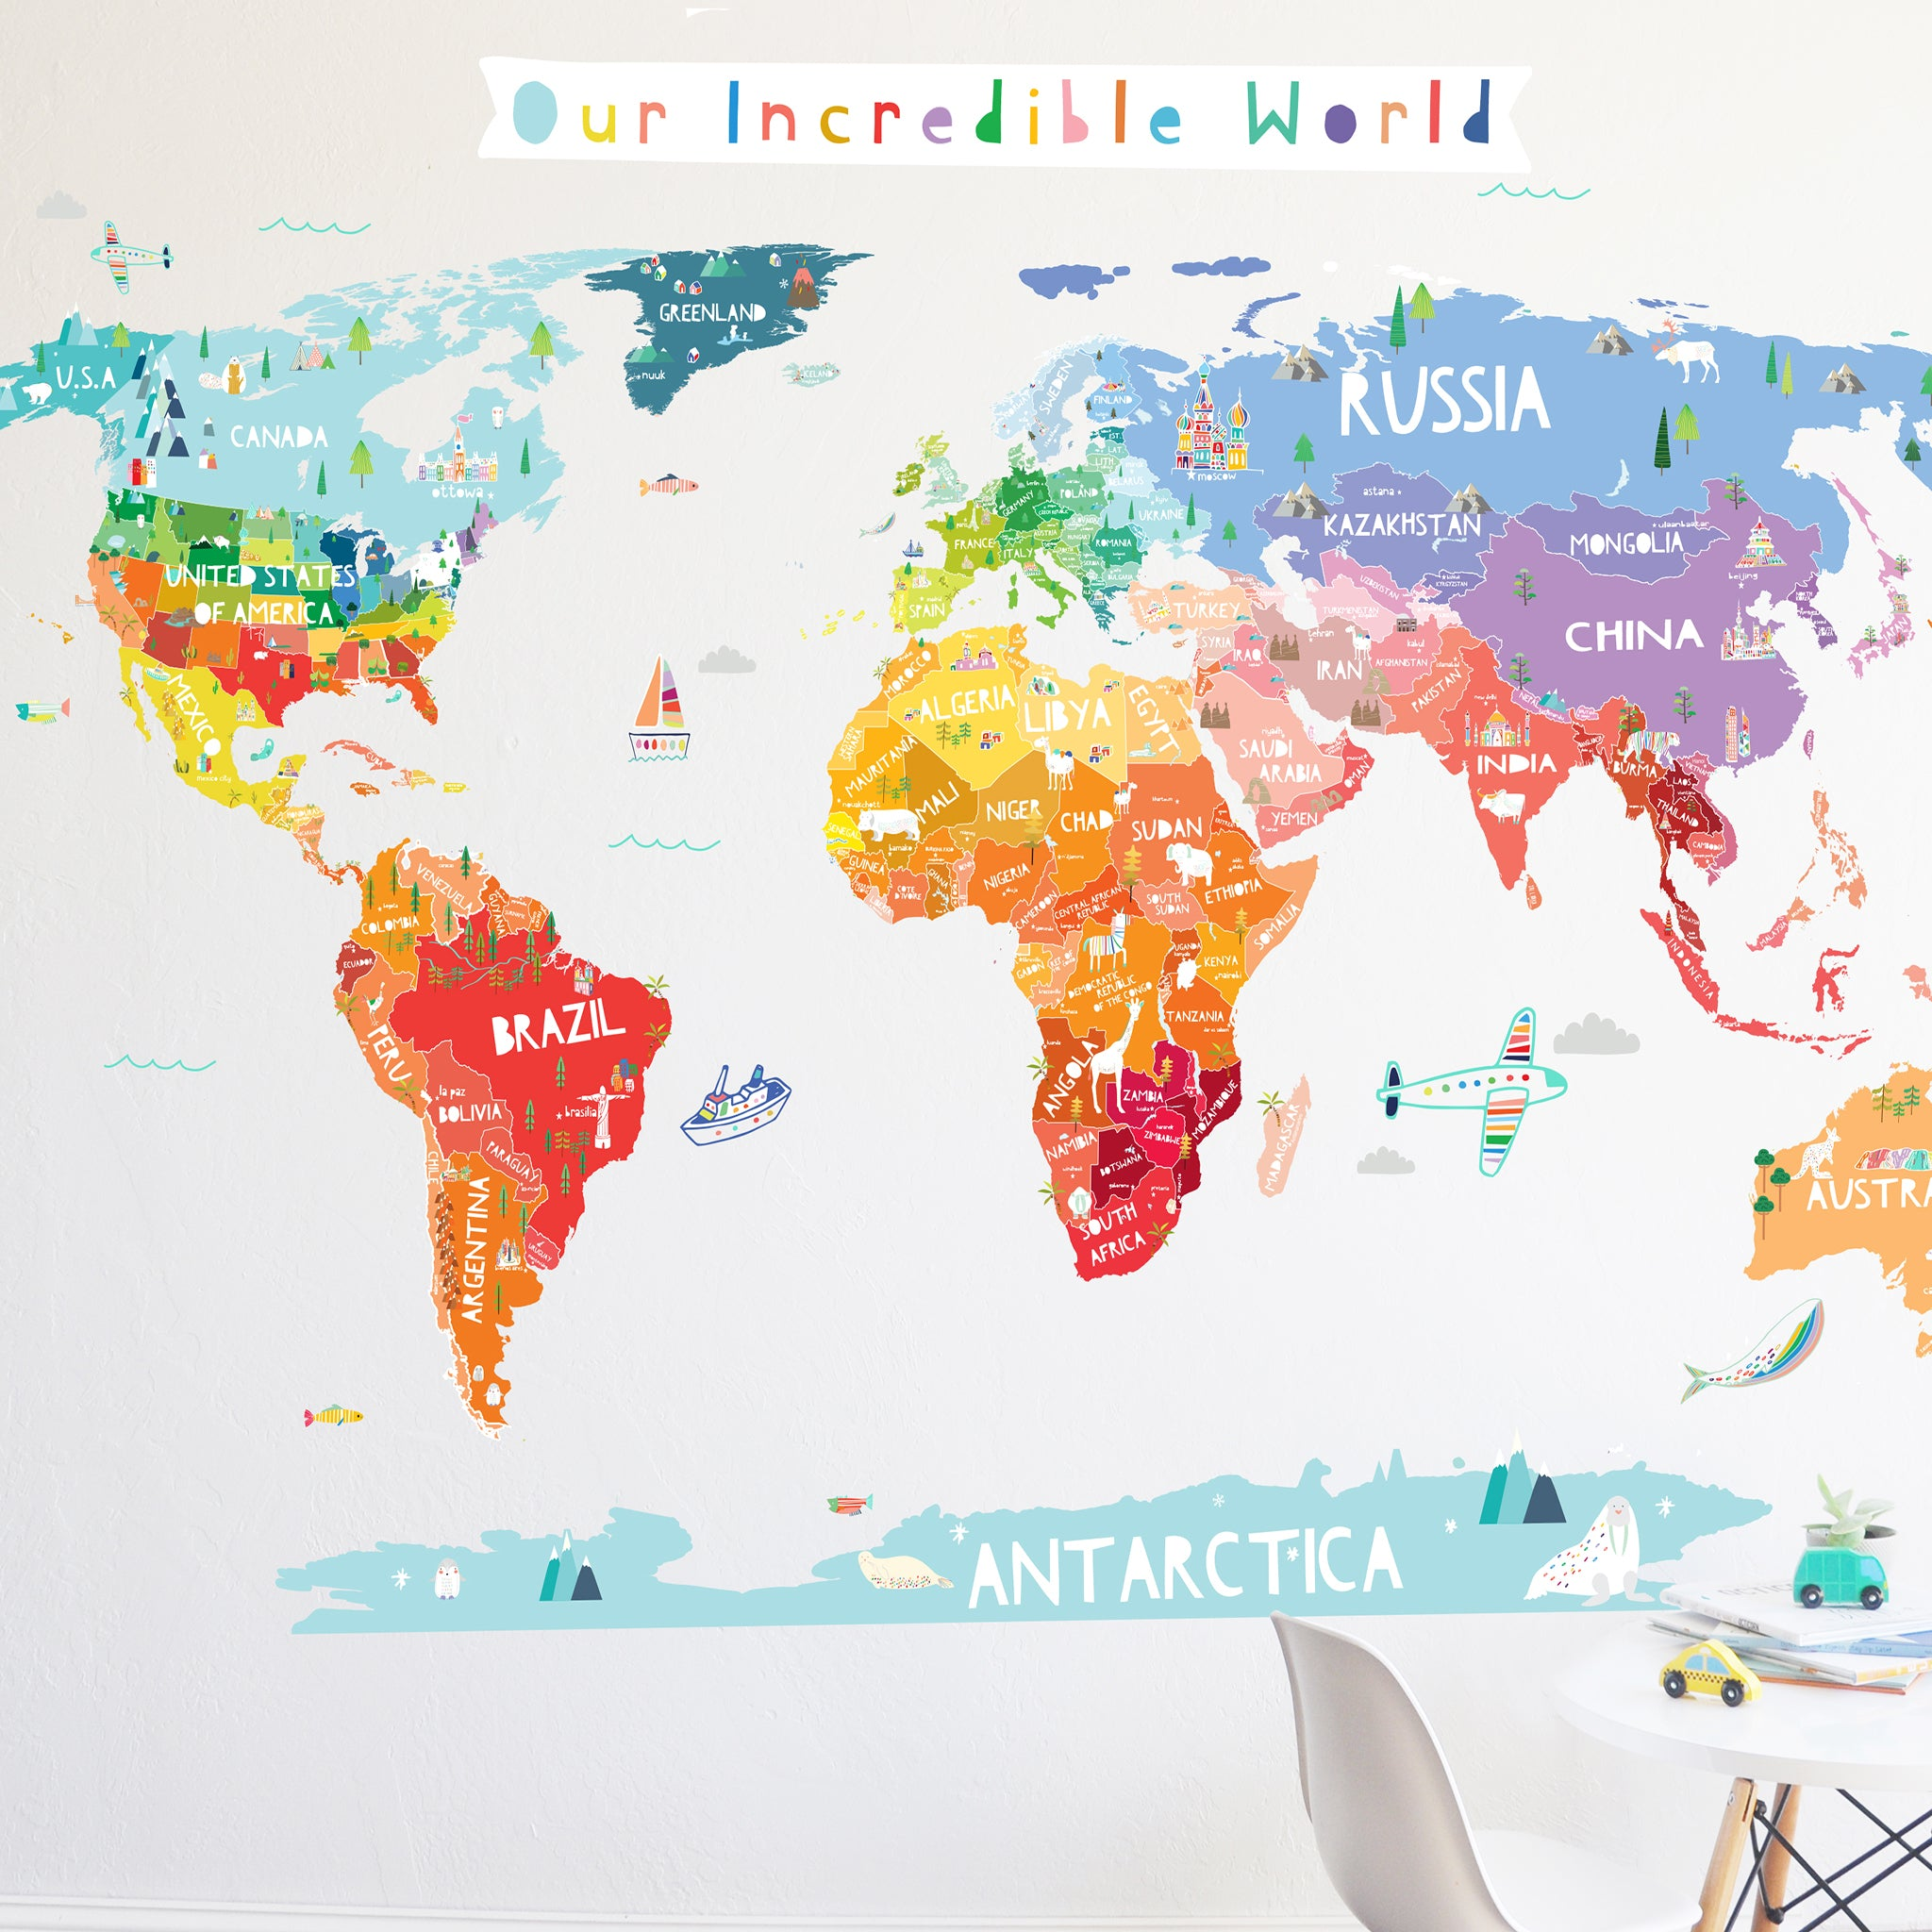 Our incredible world die cut world map wall decal with our incredible world die cut world map wall decal with personalization stickers gumiabroncs Choice Image